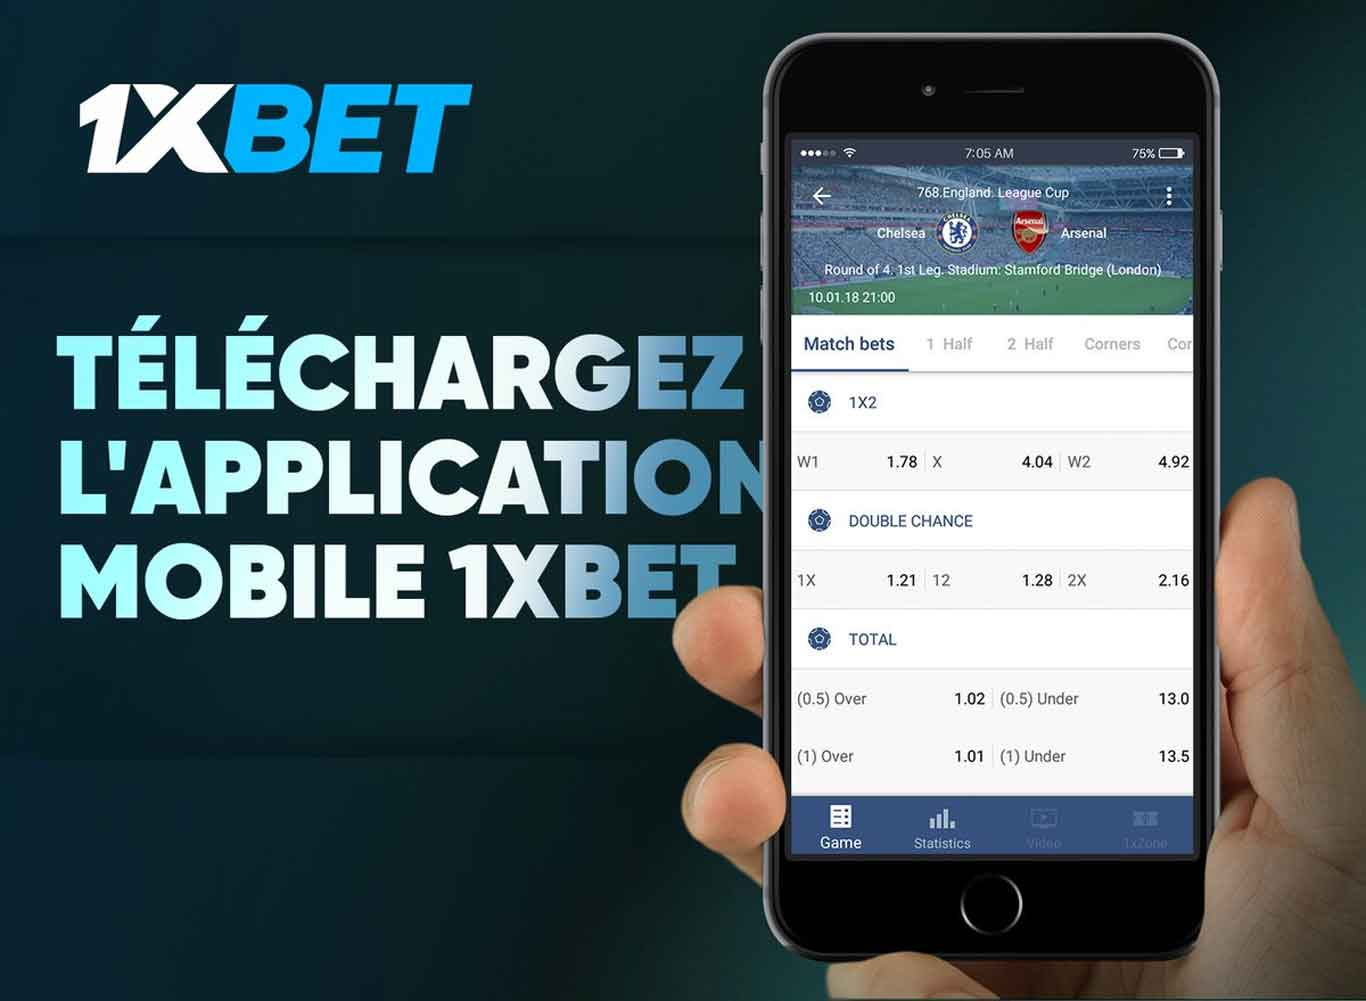 telecharger l'application mobile 1xbet